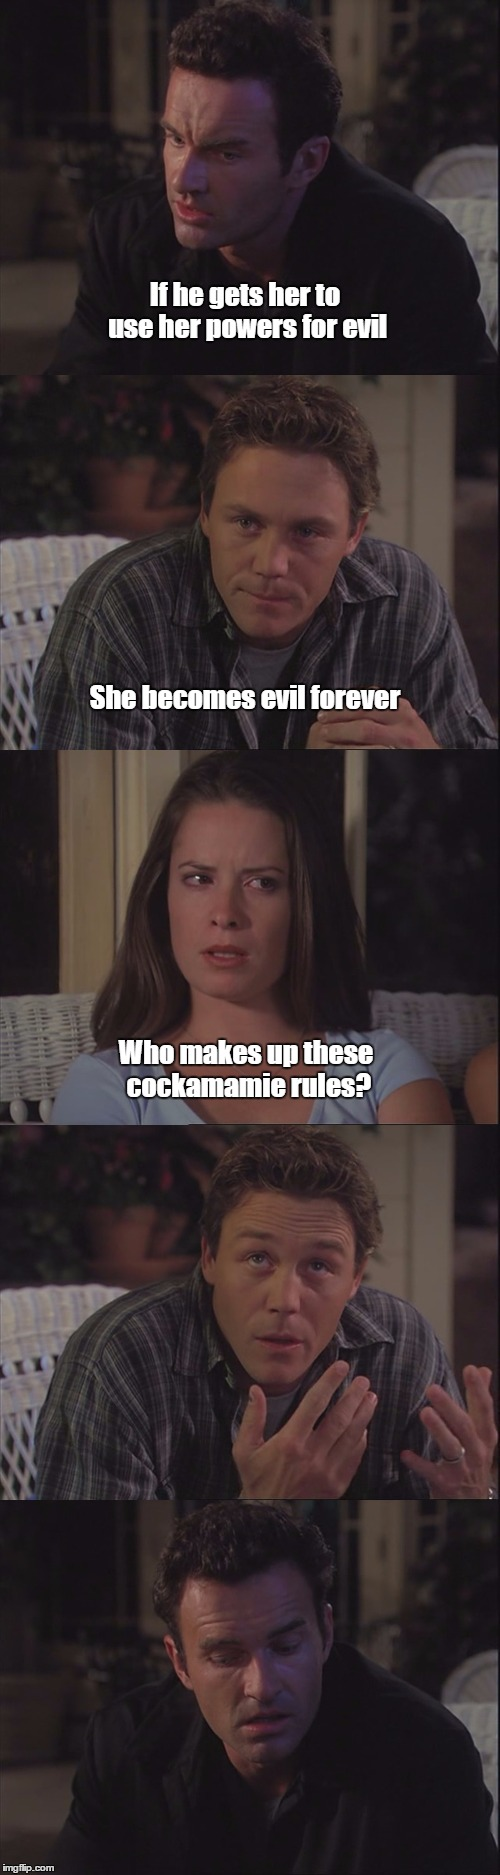 Charmed S04E02 | If he gets her to use her powers for evil She becomes evil forever Who makes up these cockamamie rules? | image tagged in charmed,rules | made w/ Imgflip meme maker